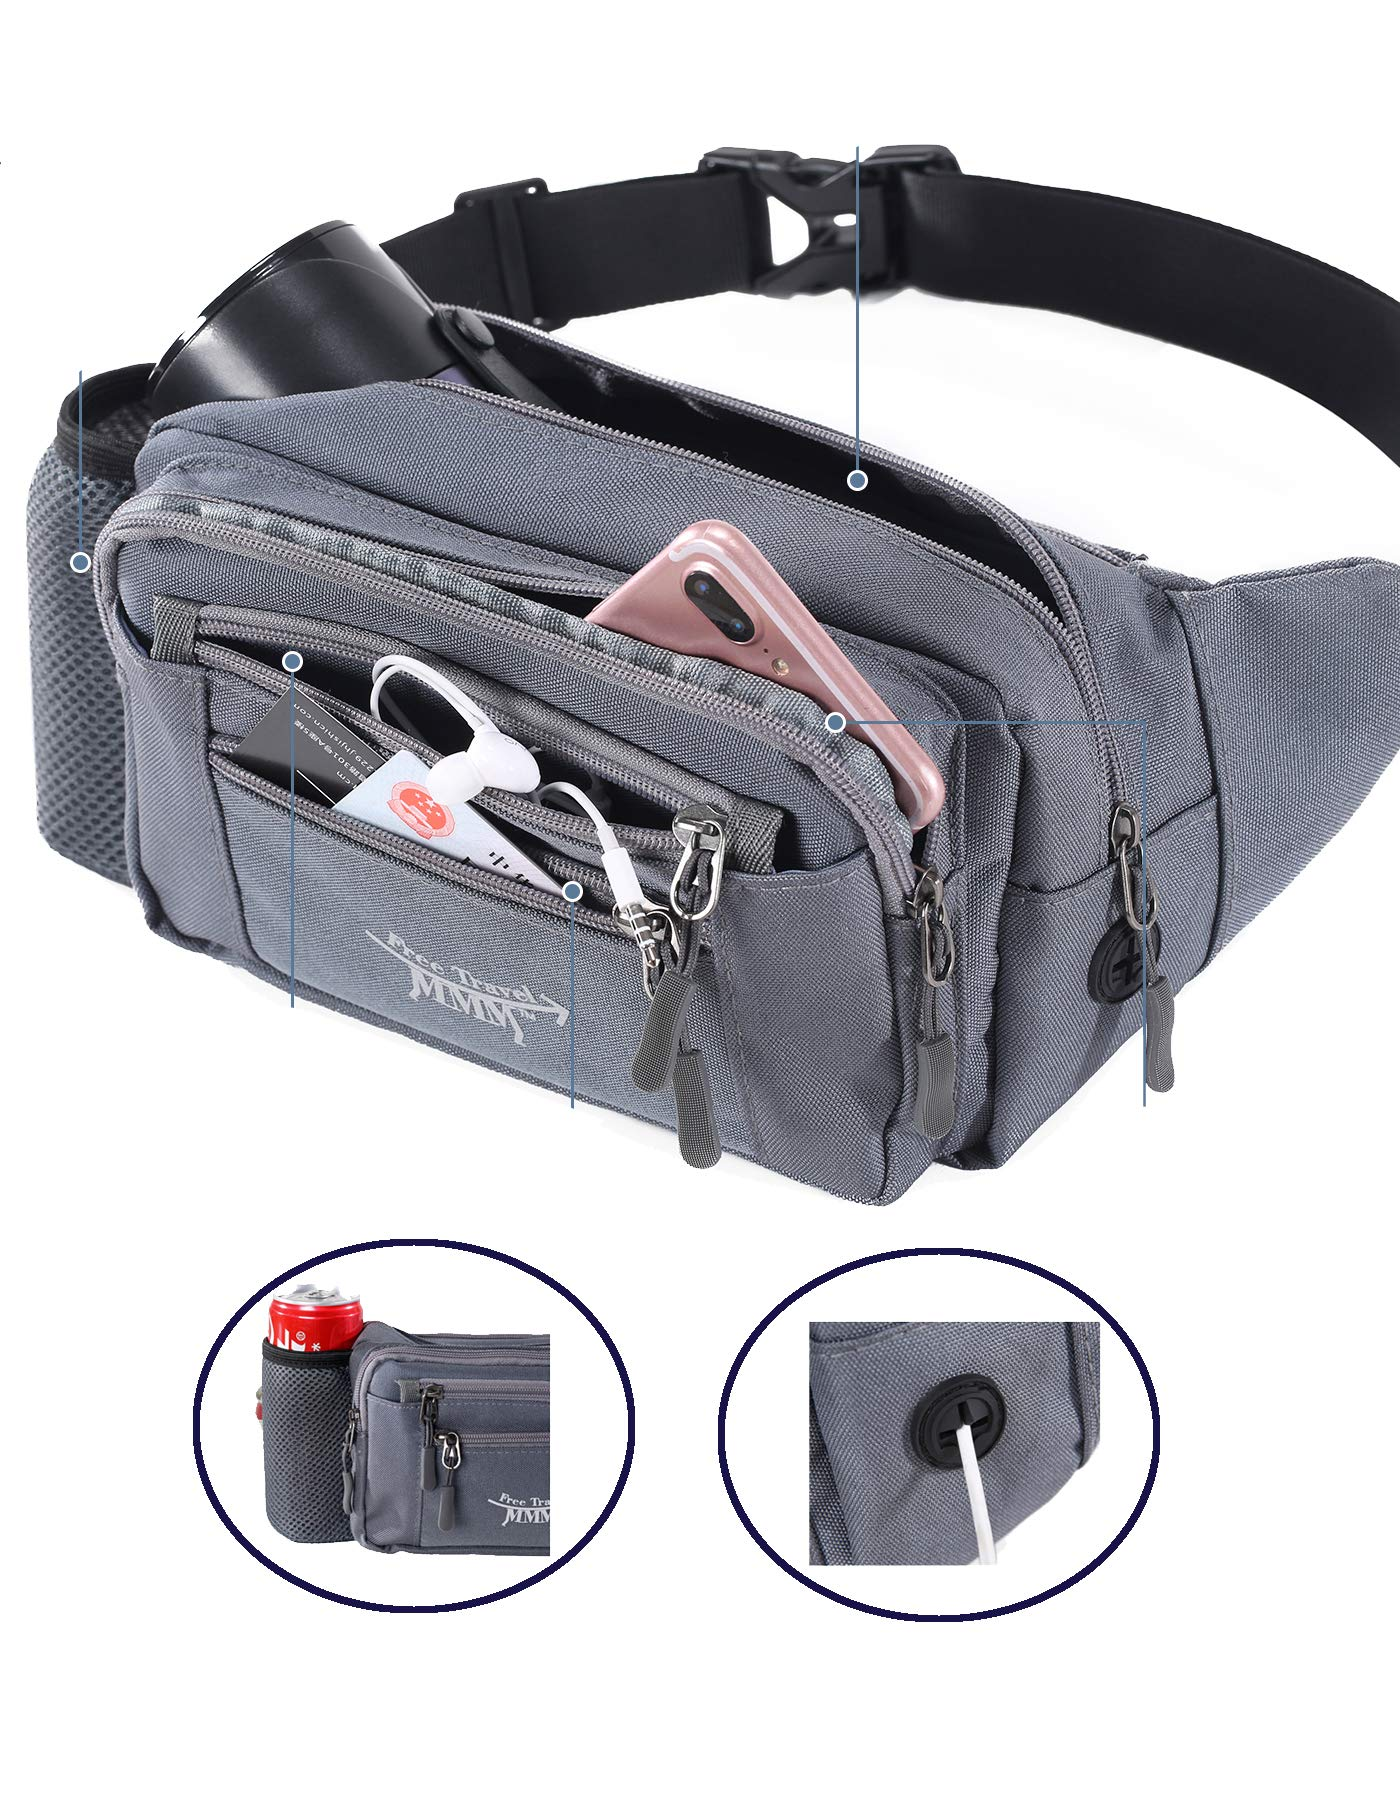 FTMMM Fanny Pack Running Waist Pack Bag for Men & Women with 1 Water Bottle Holder Lumbar Pack Fashion Multi-Function with Headphone Jack for Outdoors Workout Traveling Casual Running Hiking Cycling by FTMMM